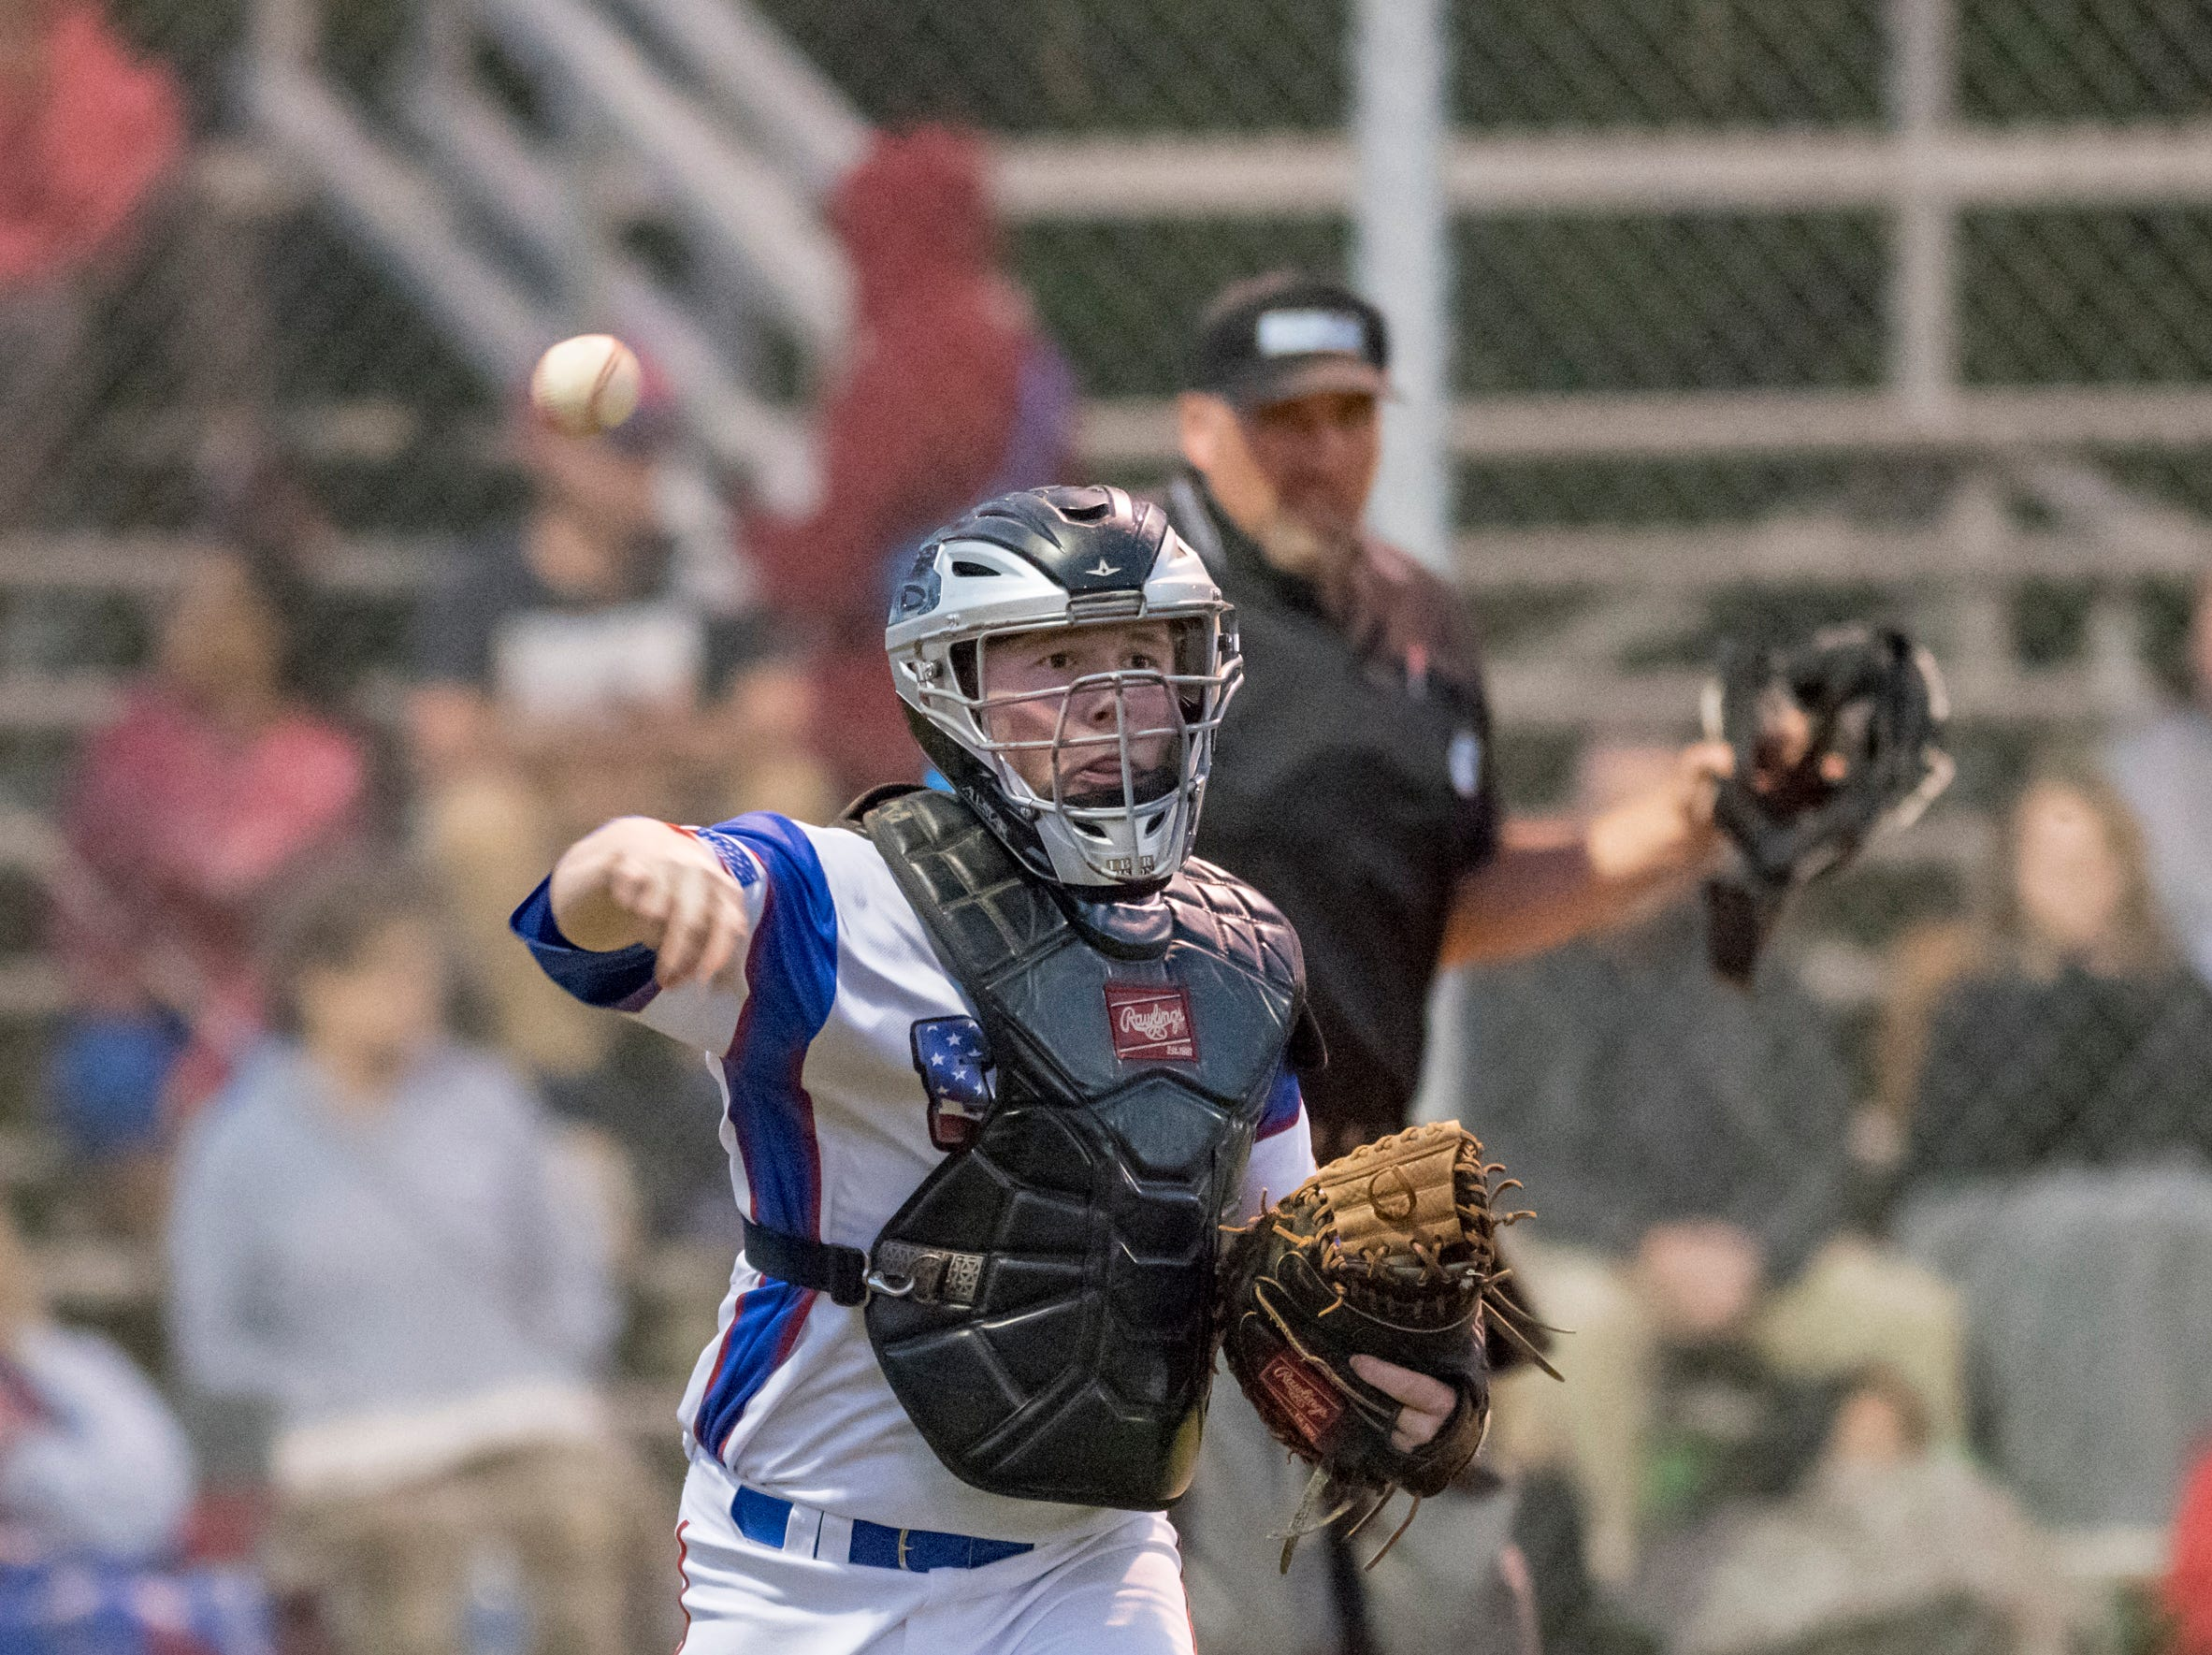 Catcher Jason Roberts (15) tosses to first for an out after a dropped third strike during the Christian Educational Consortium vs Pine Forest baseball game at Pine Forest High School in Pensacola on Wednesday, April 3, 2019.